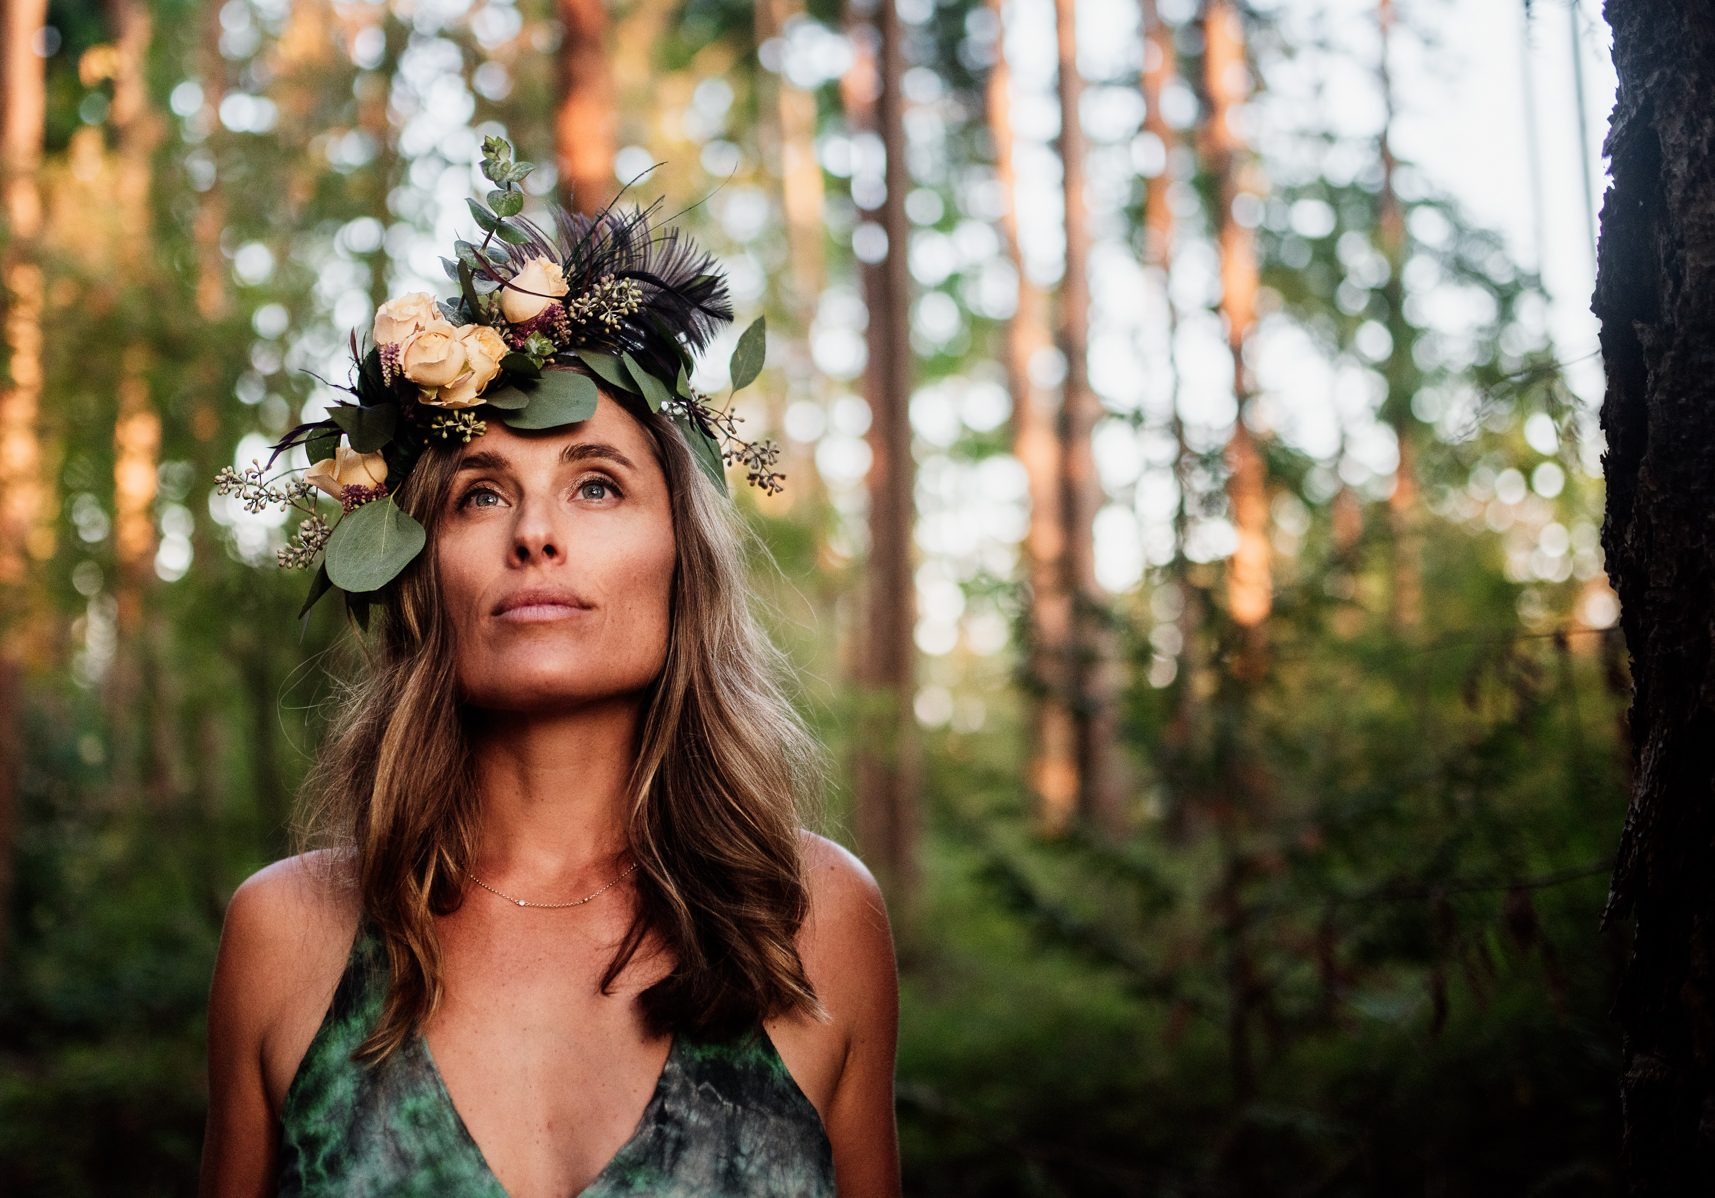 Women wearing flower crown in forest for lifestyle photoshoot